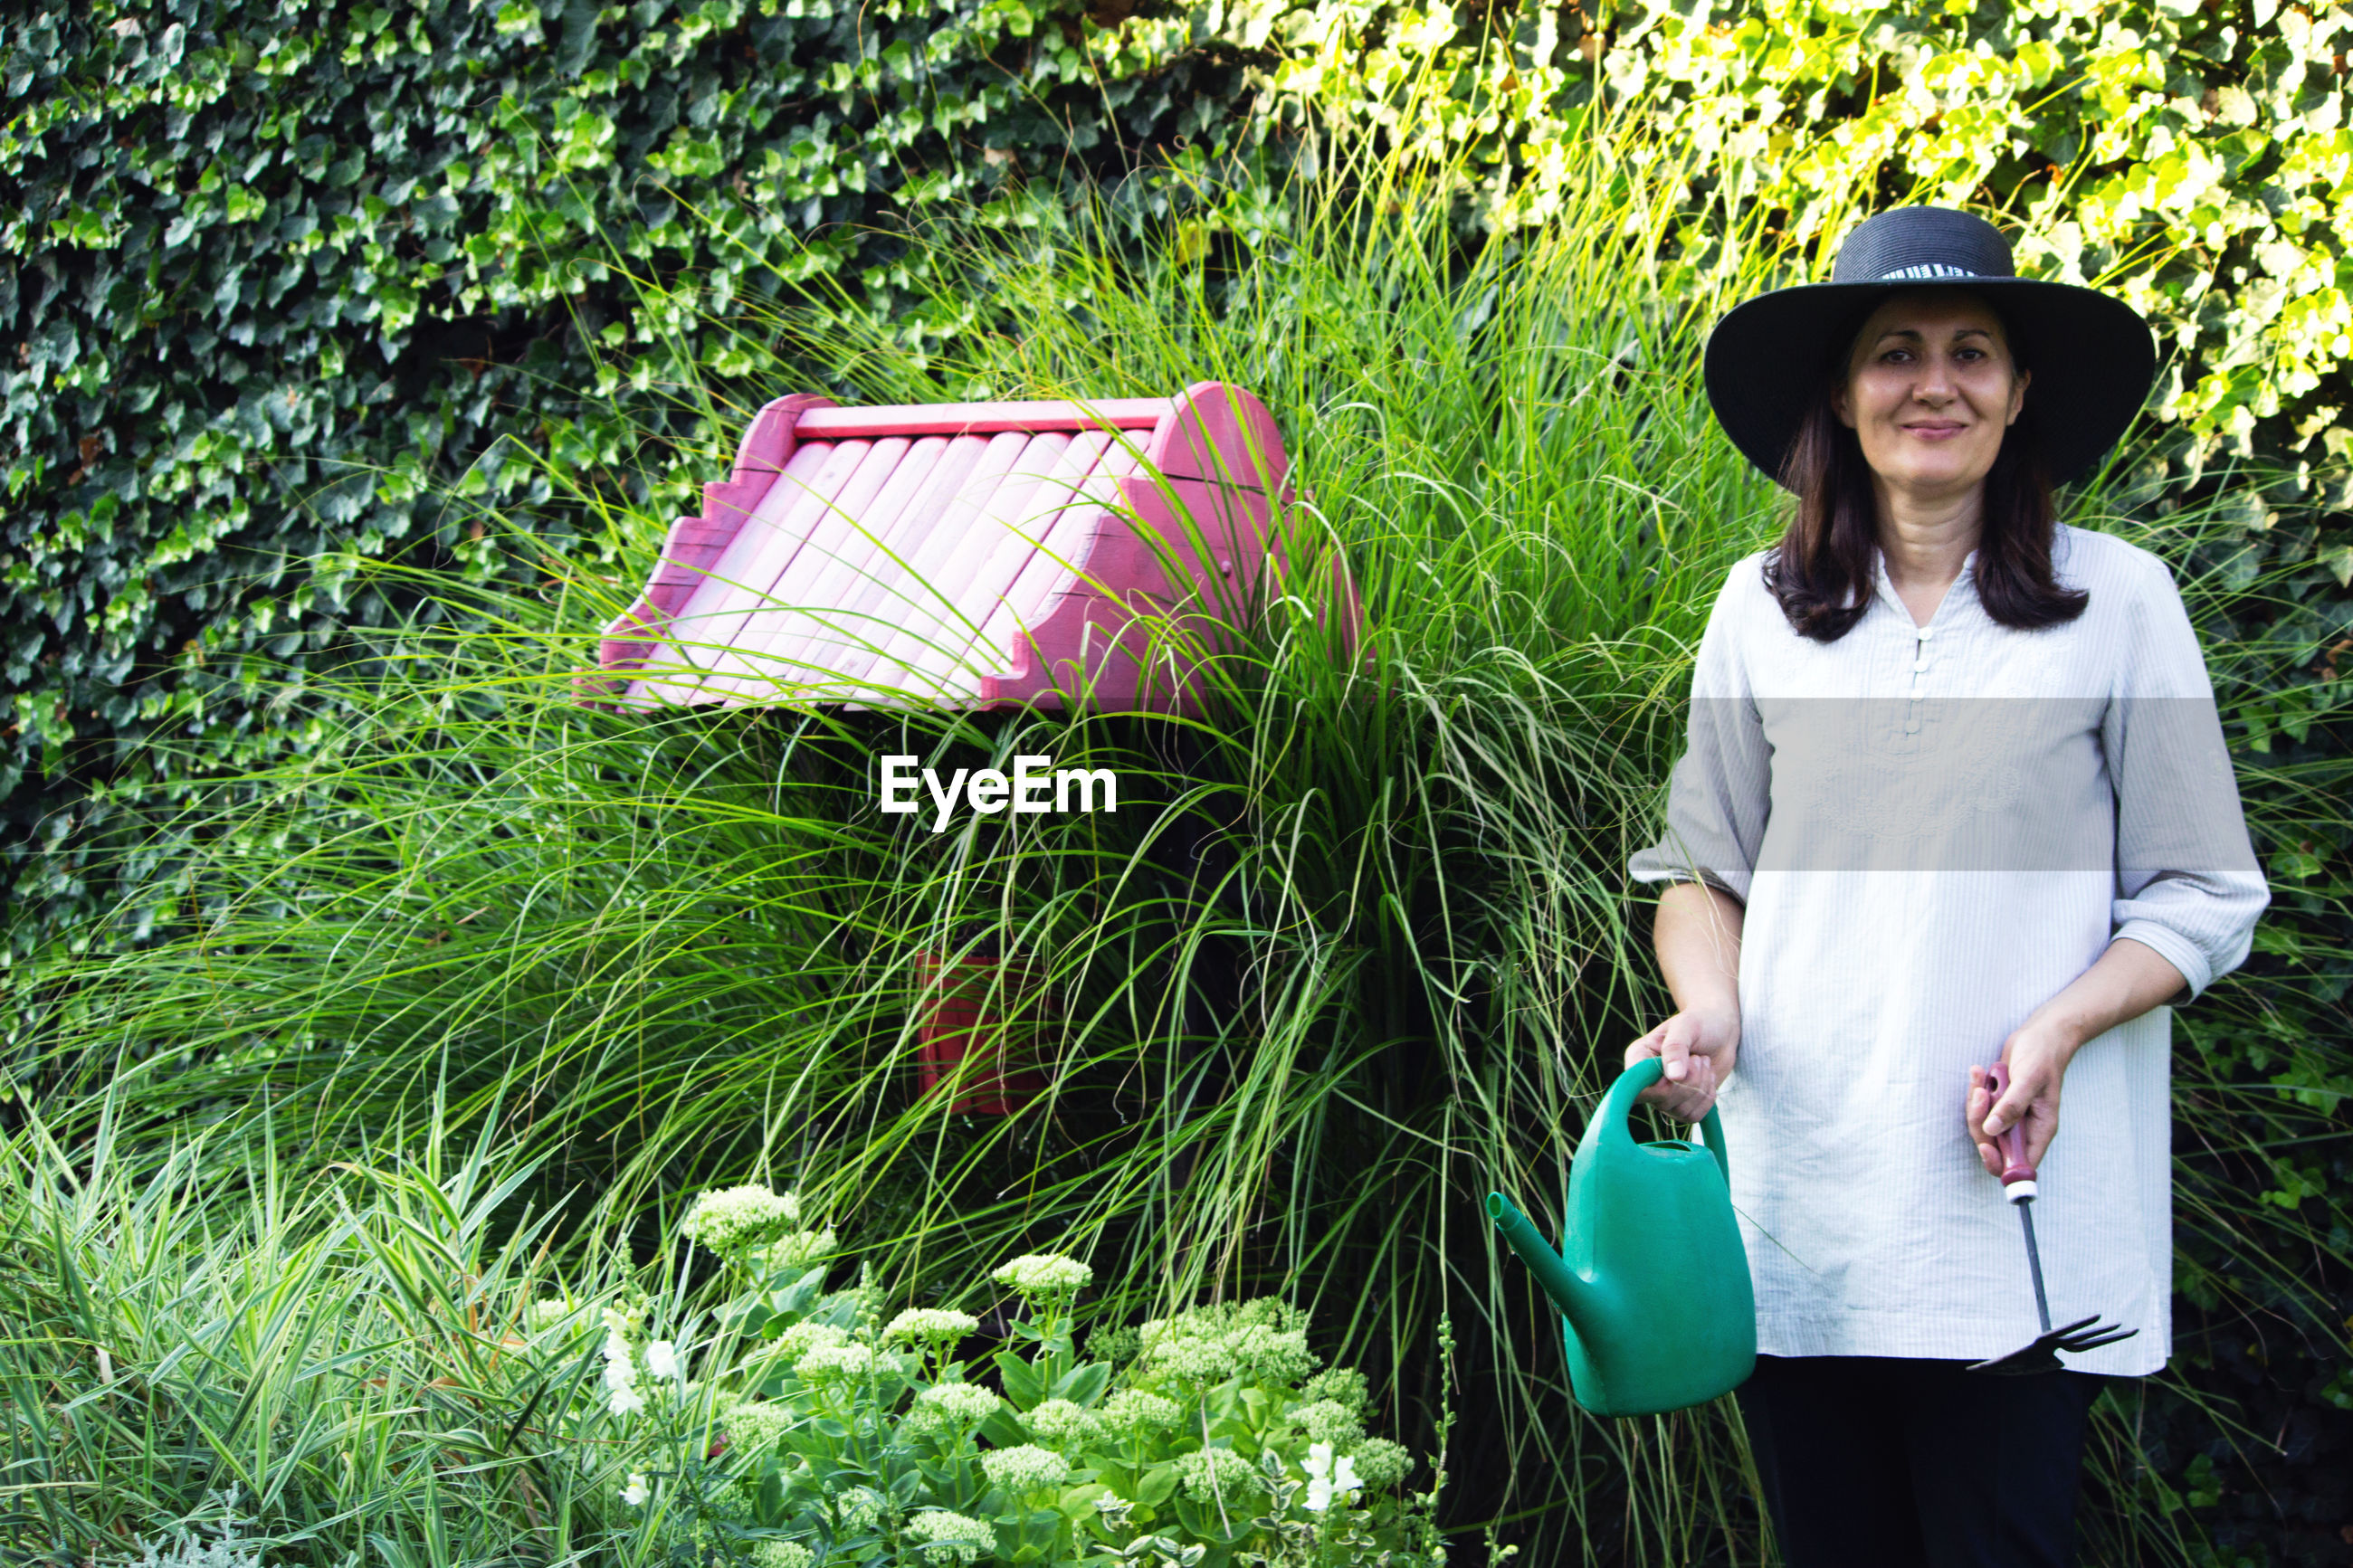 Portrait of woman holding equipment and can while standing by plants